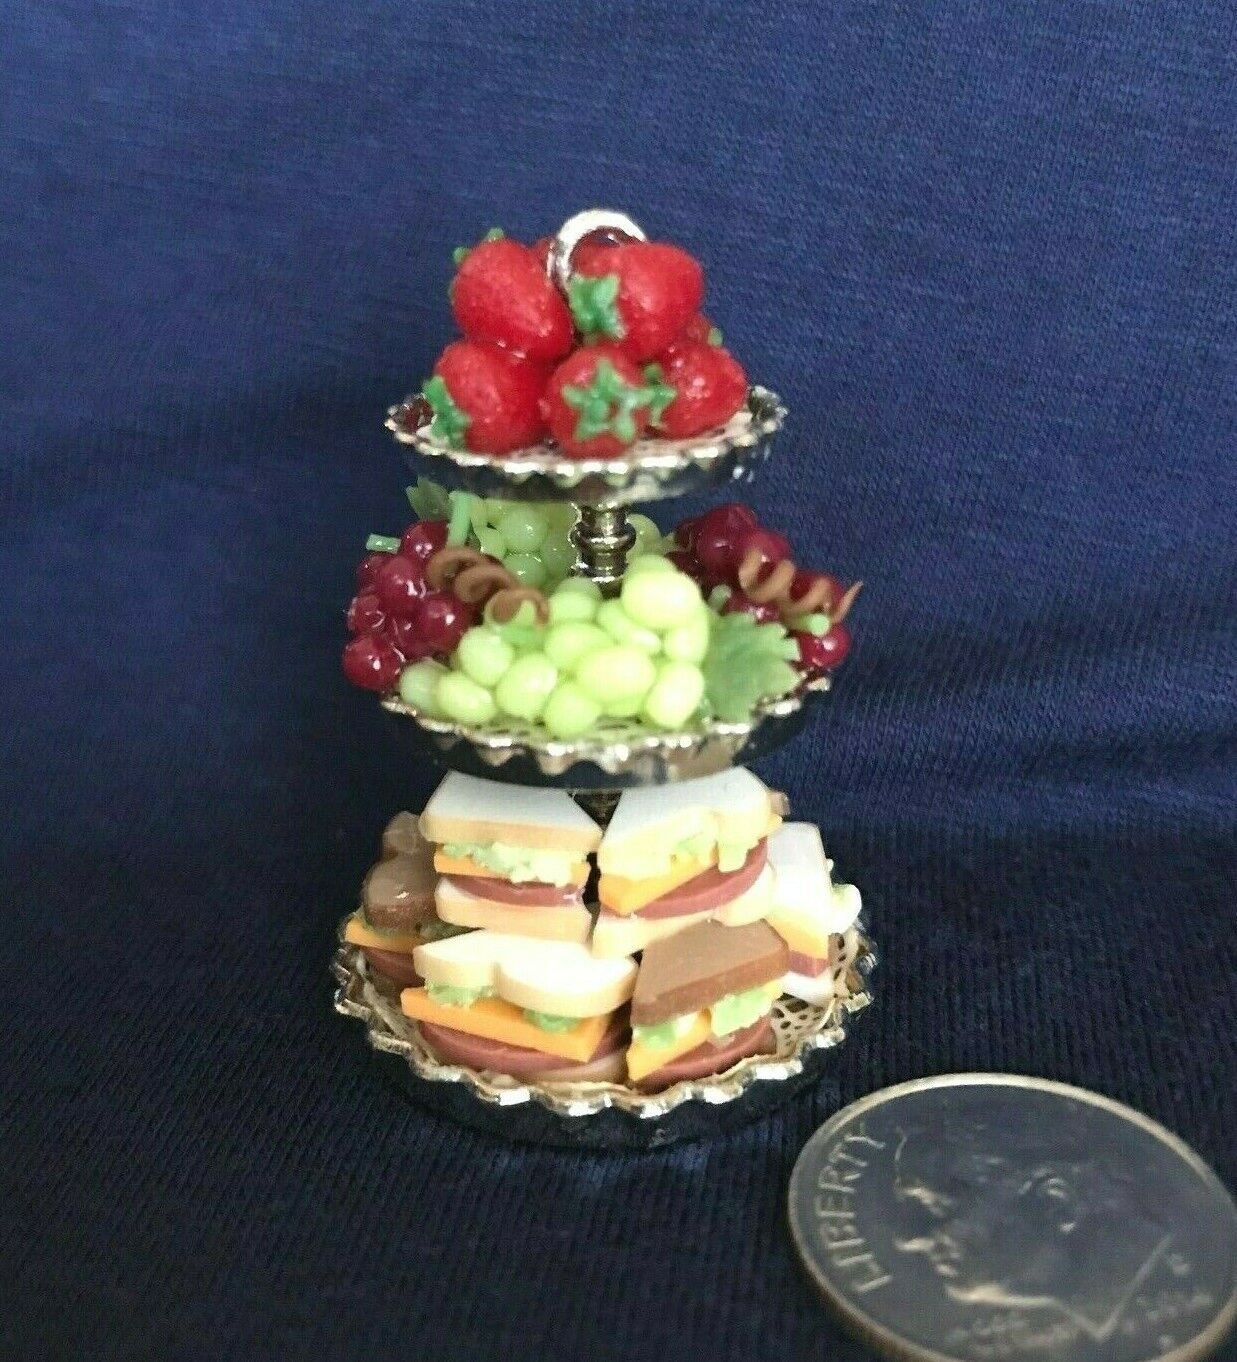 DOLLHOUSE MINIATURE 3 TIERED SANDWICH FRUIT FILLED STAND - $29.50